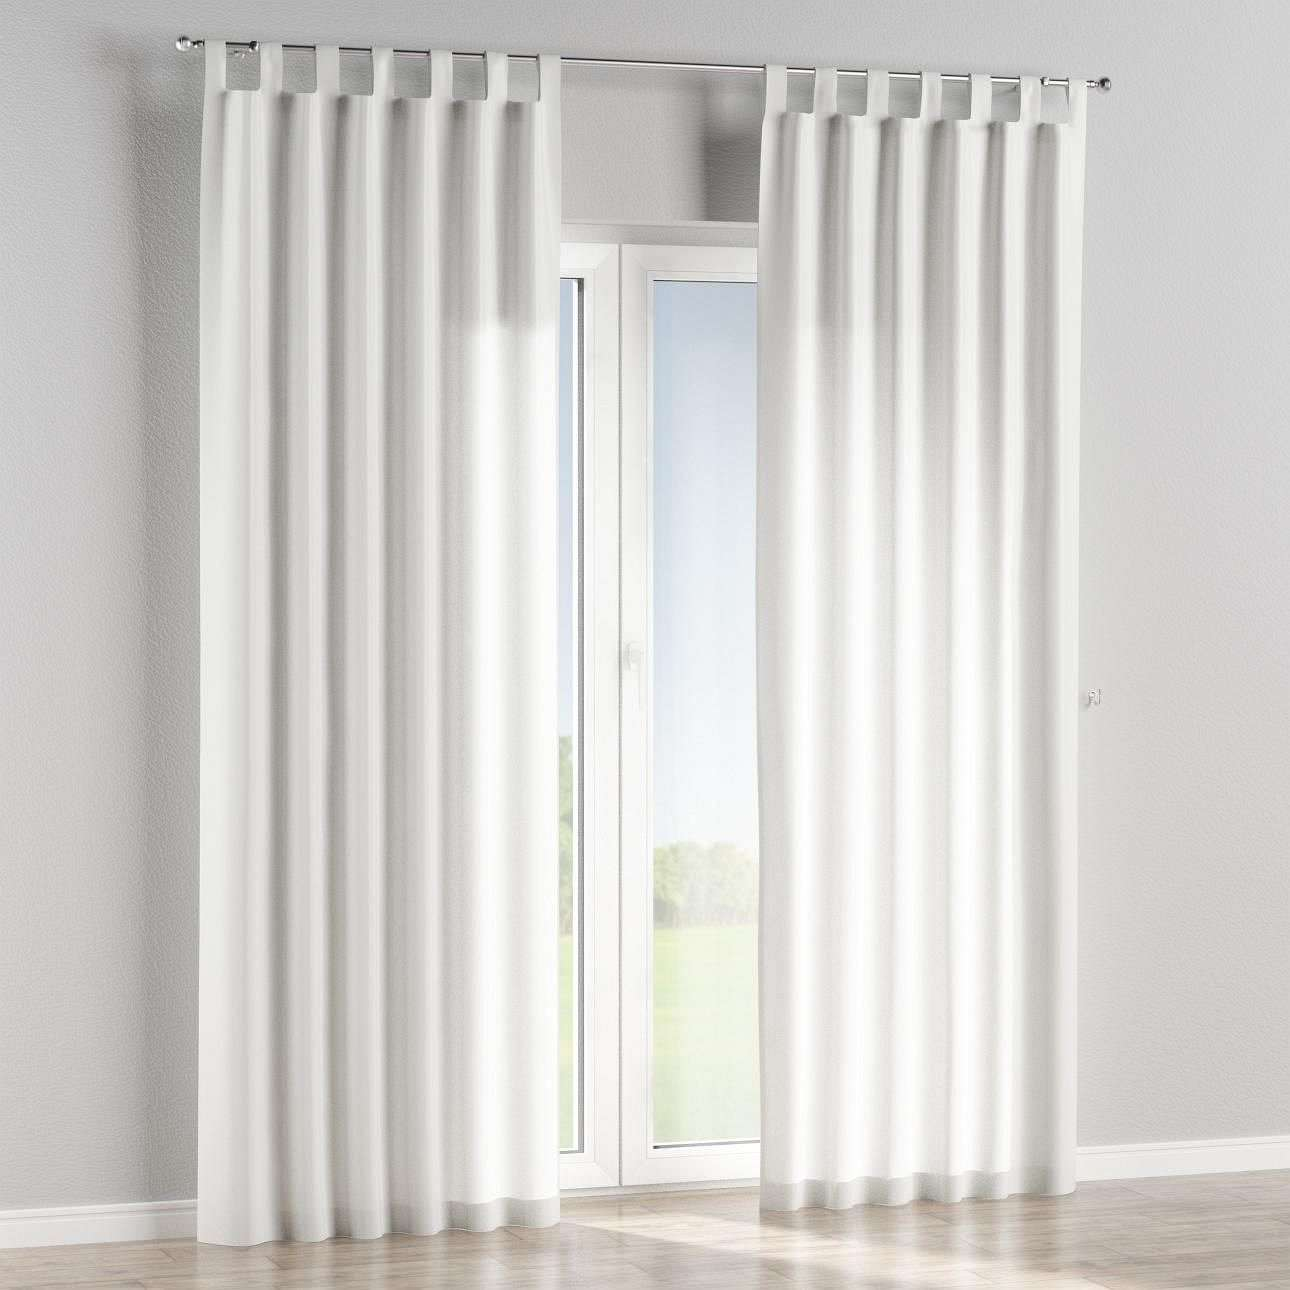 Tab top curtains in collection Arcana, fabric: 102-02